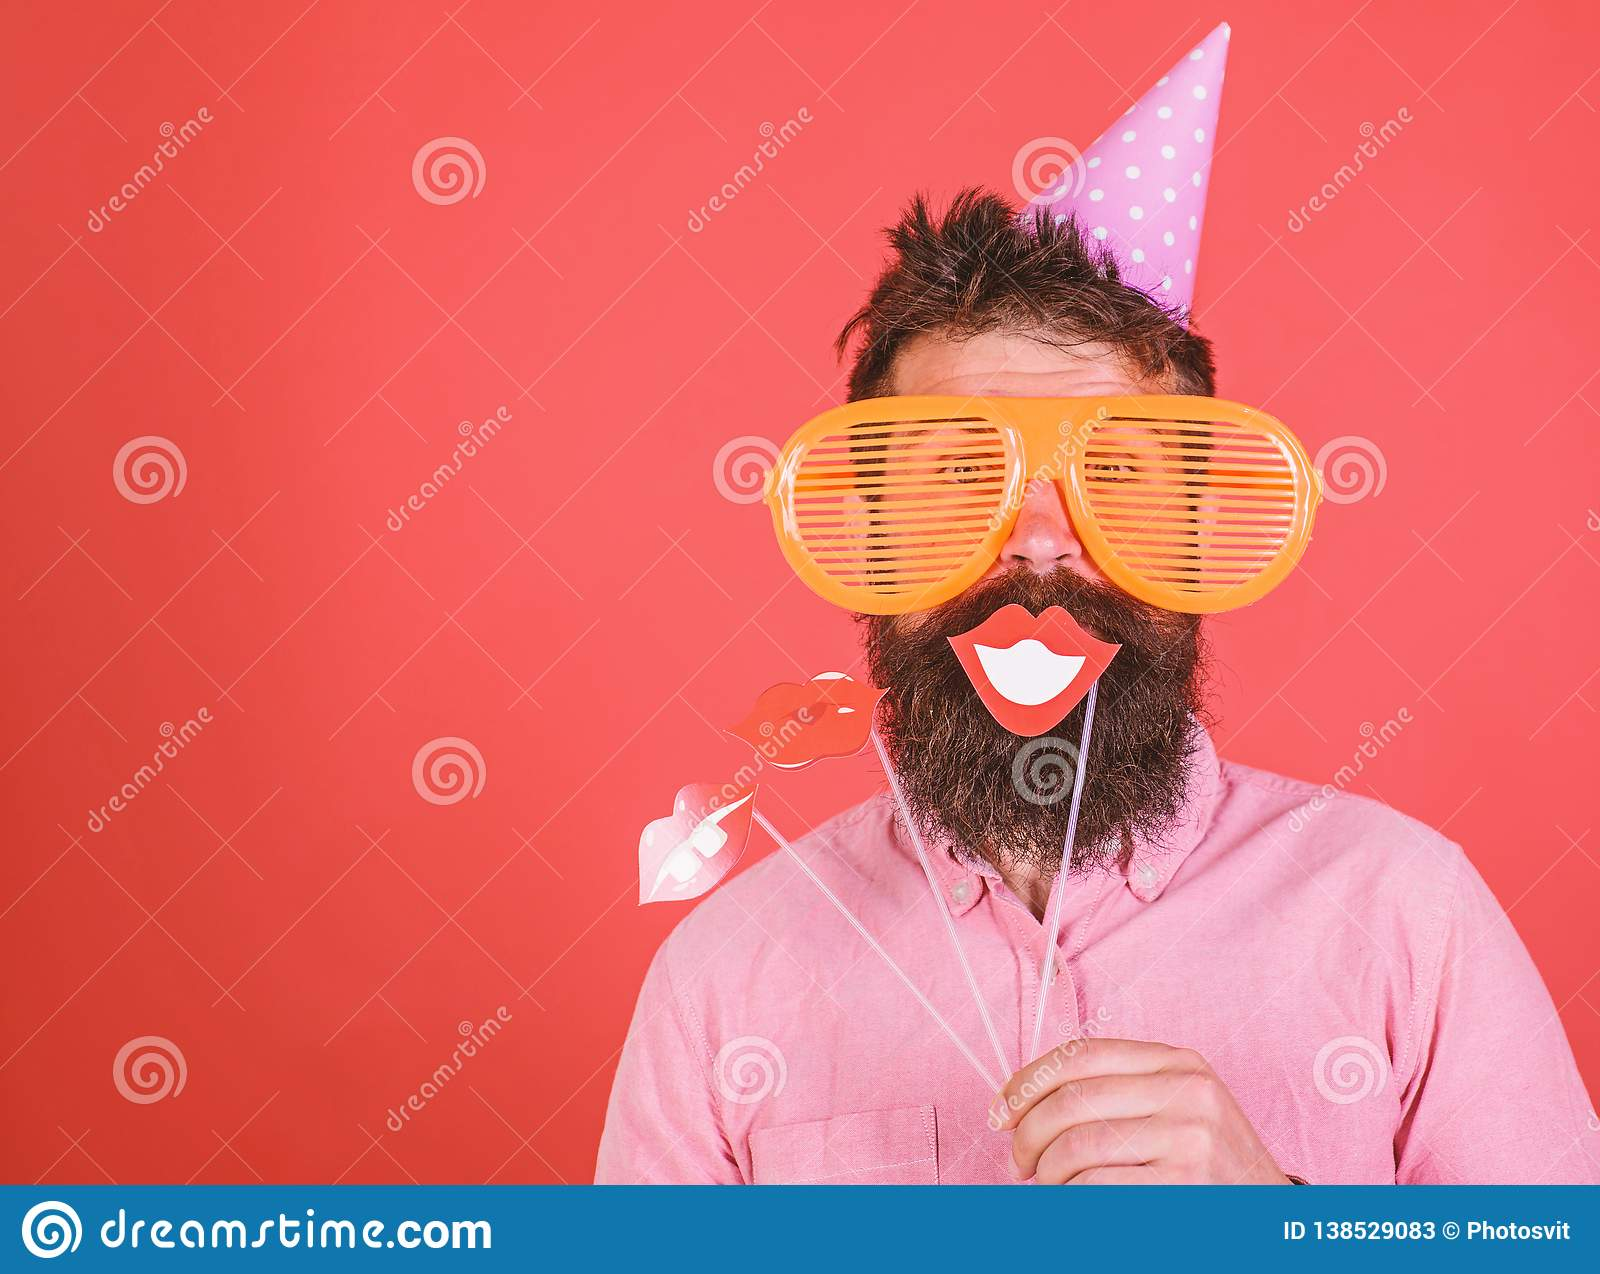 Guy In Party Hat Celebrate, Posing With Photo Props  Hipster